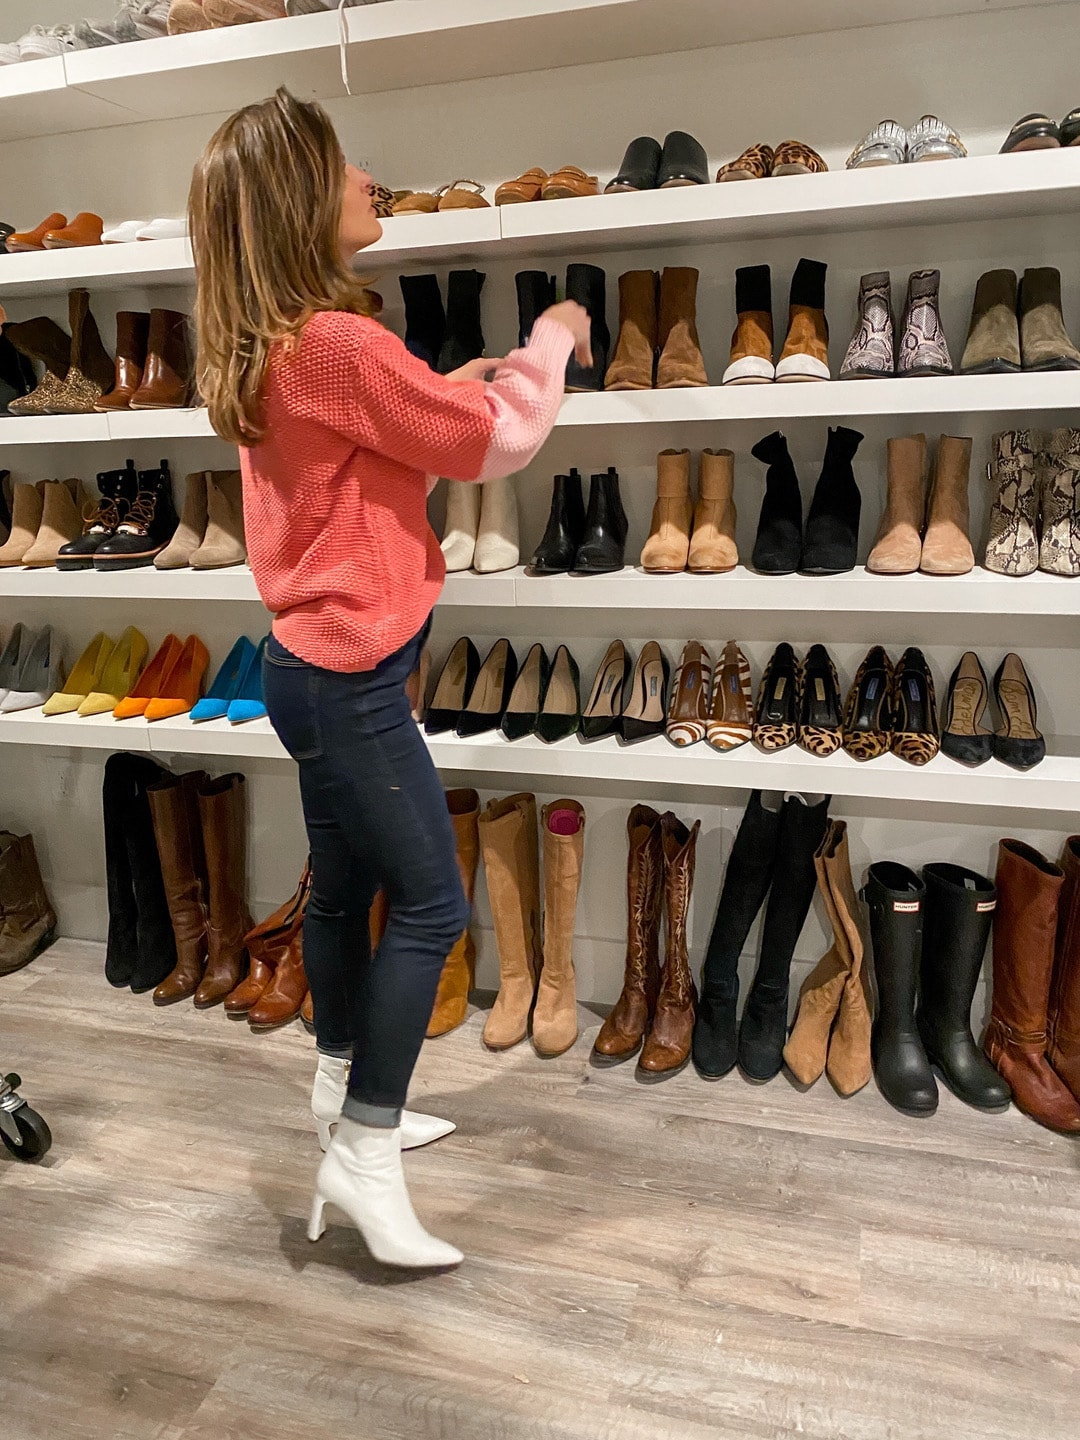 Brighton Keller wearing pink sweater, white booties and dark wash jeans